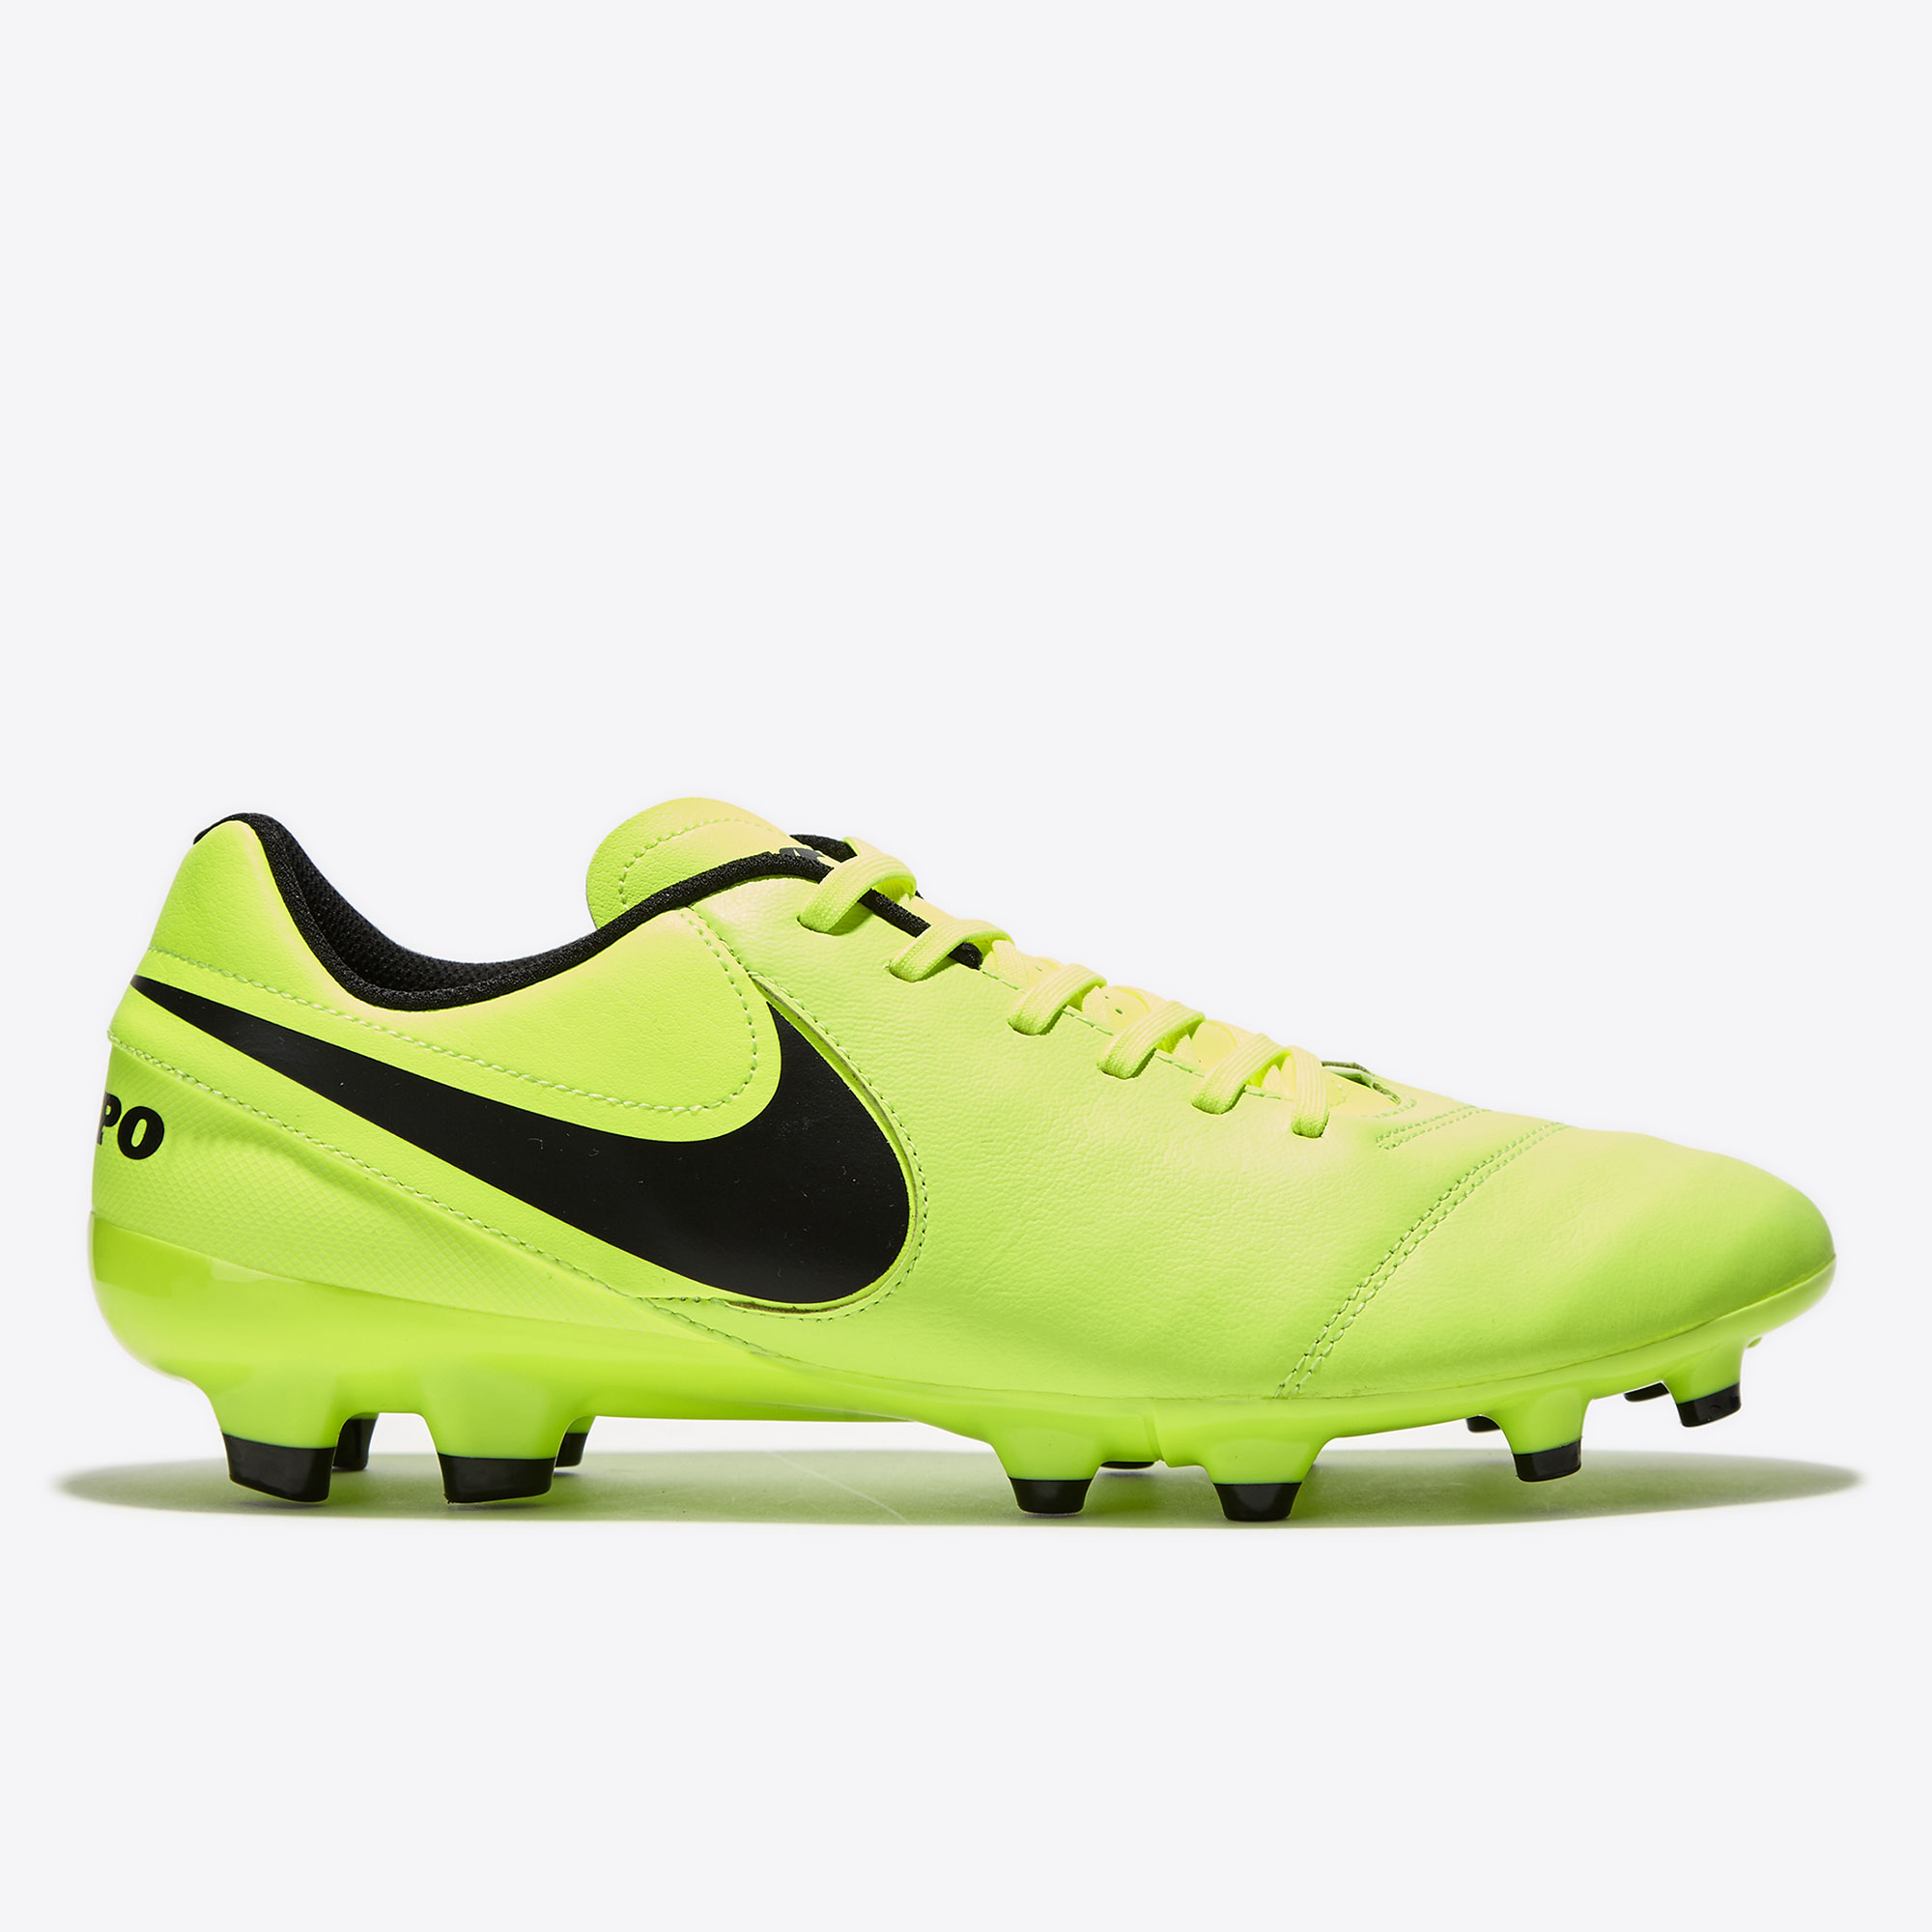 Nike Tiempo Genio II Leather FG Volt/Black/V